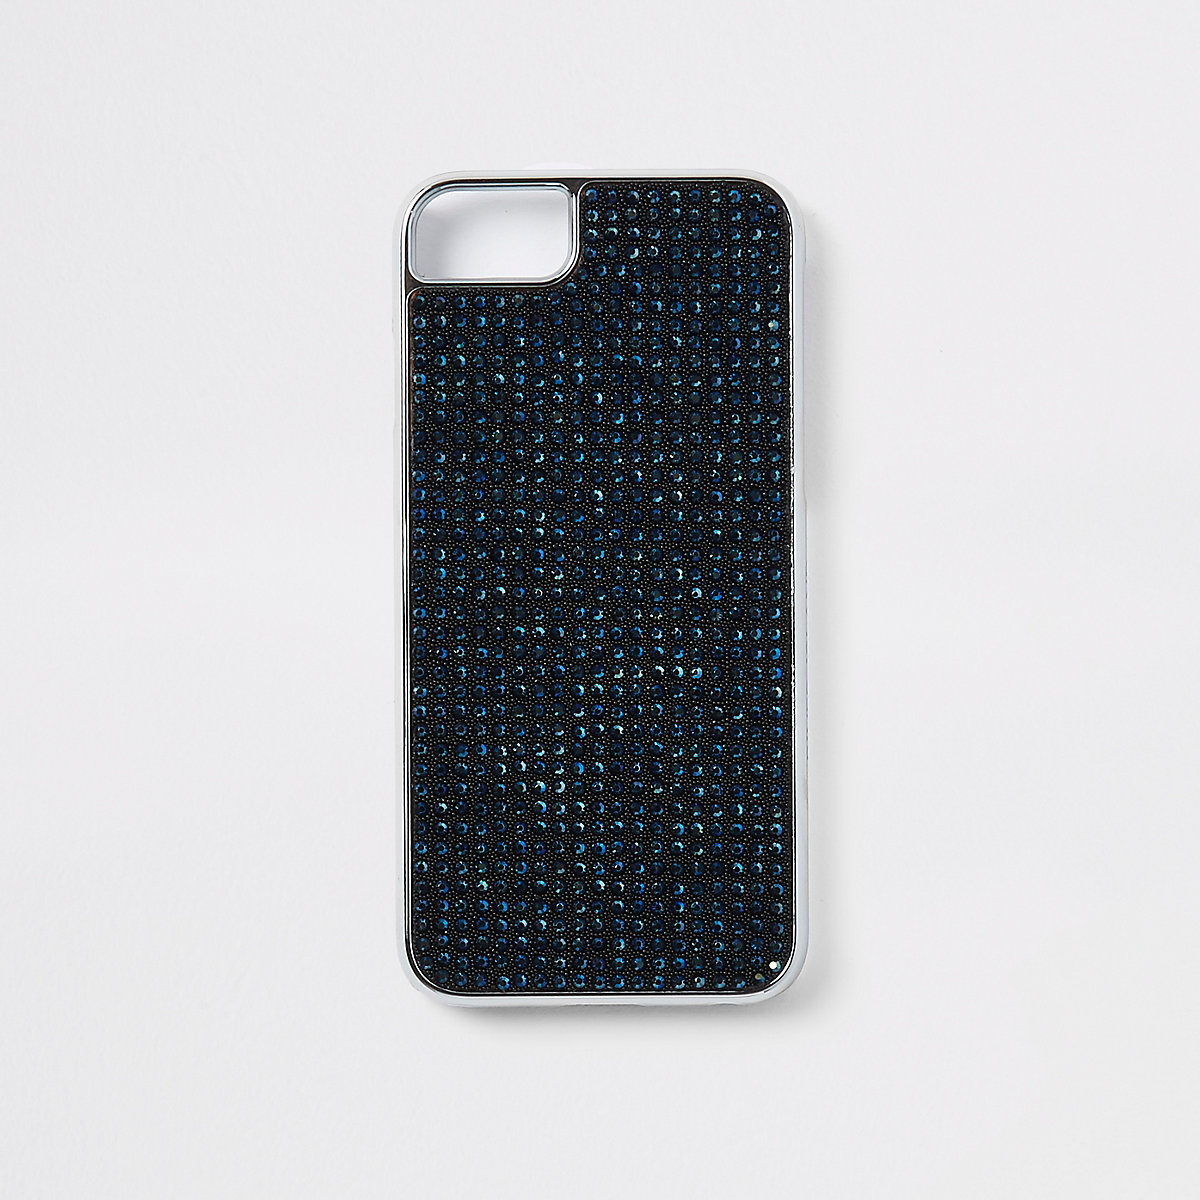 Black gem studded phone case